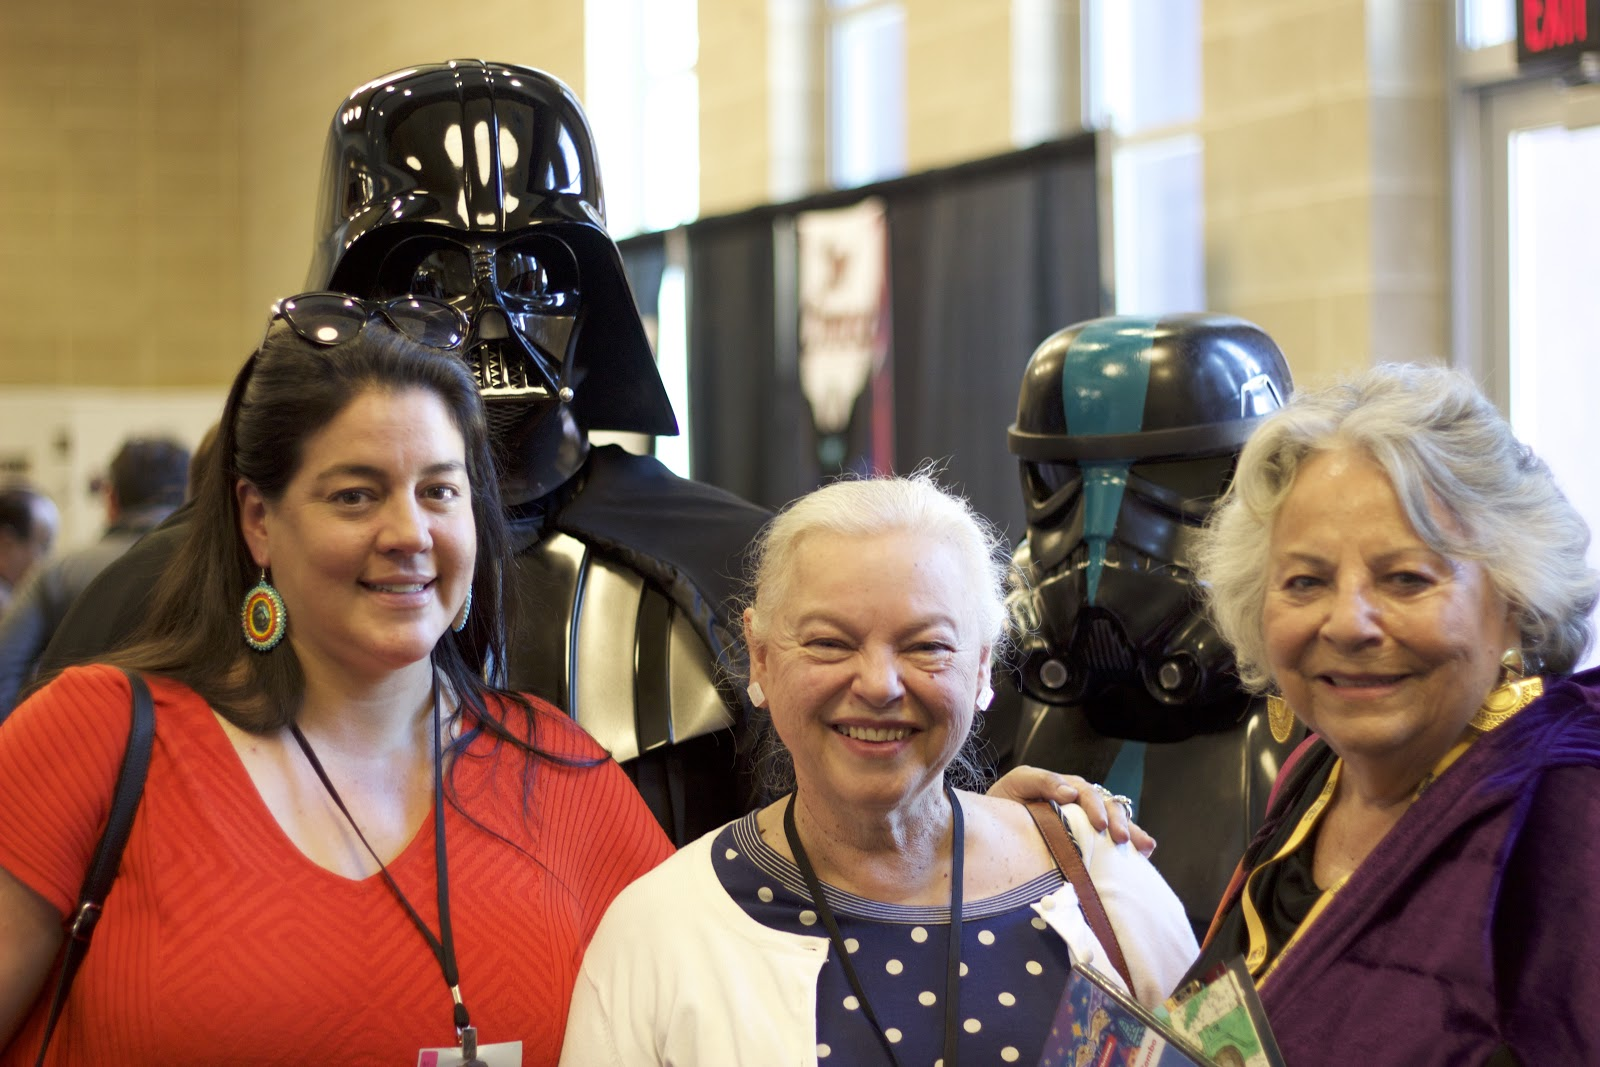 Ladonna Harris and company. Including Darth Vader and a dark Stormtrooper! Photo: Jason Asenap